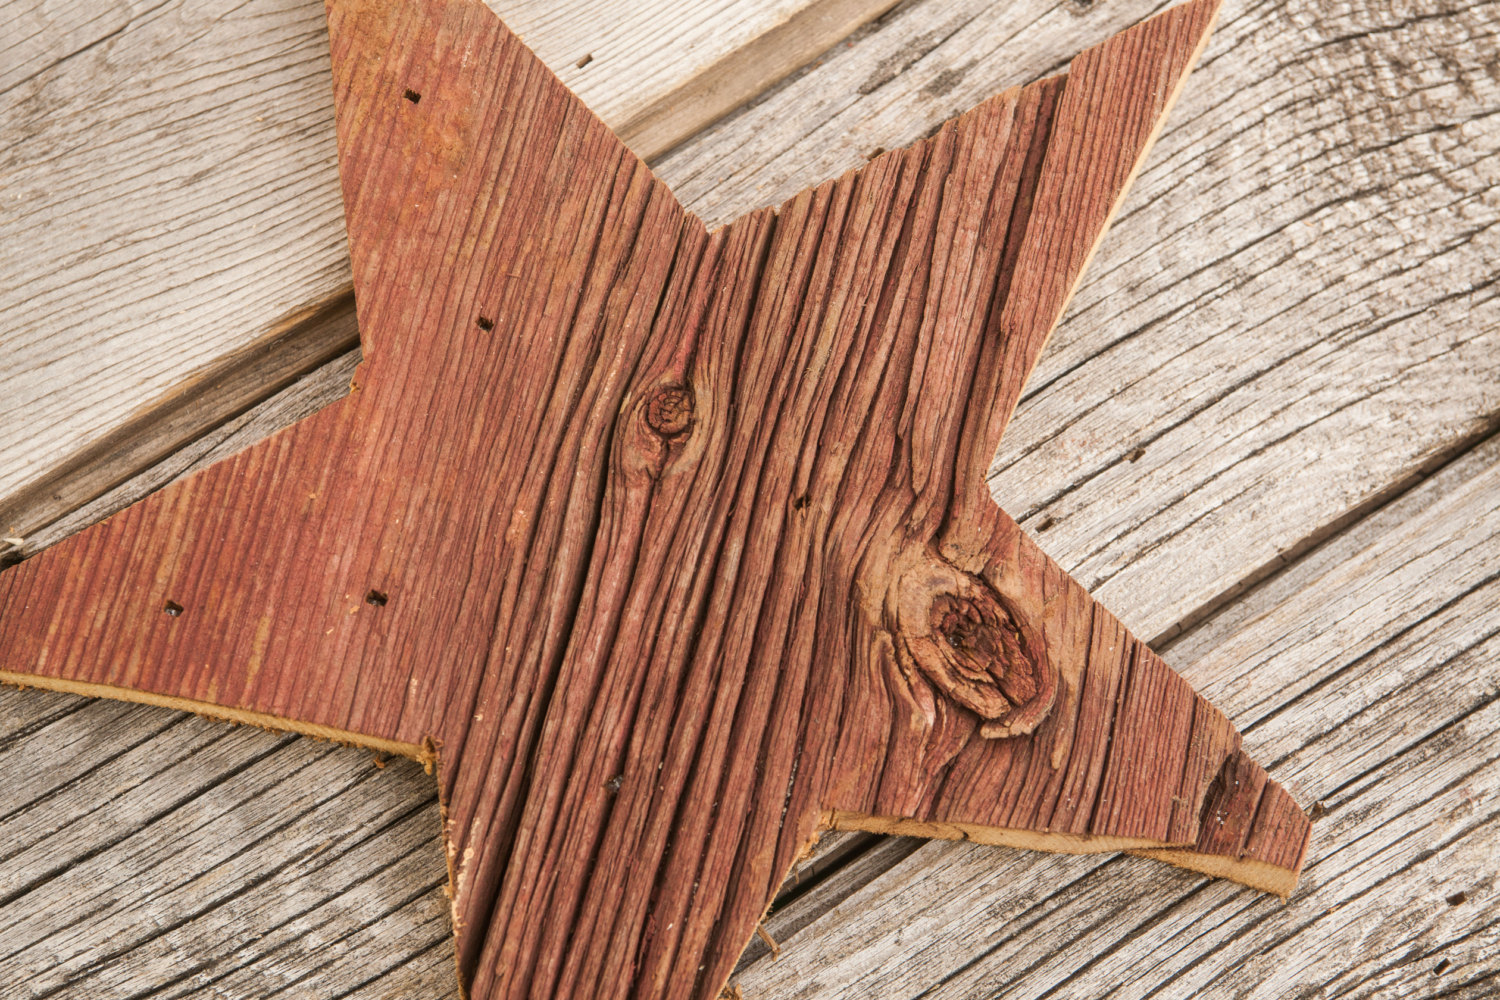 California republic flag barn wood edition wooden for Reusable wood